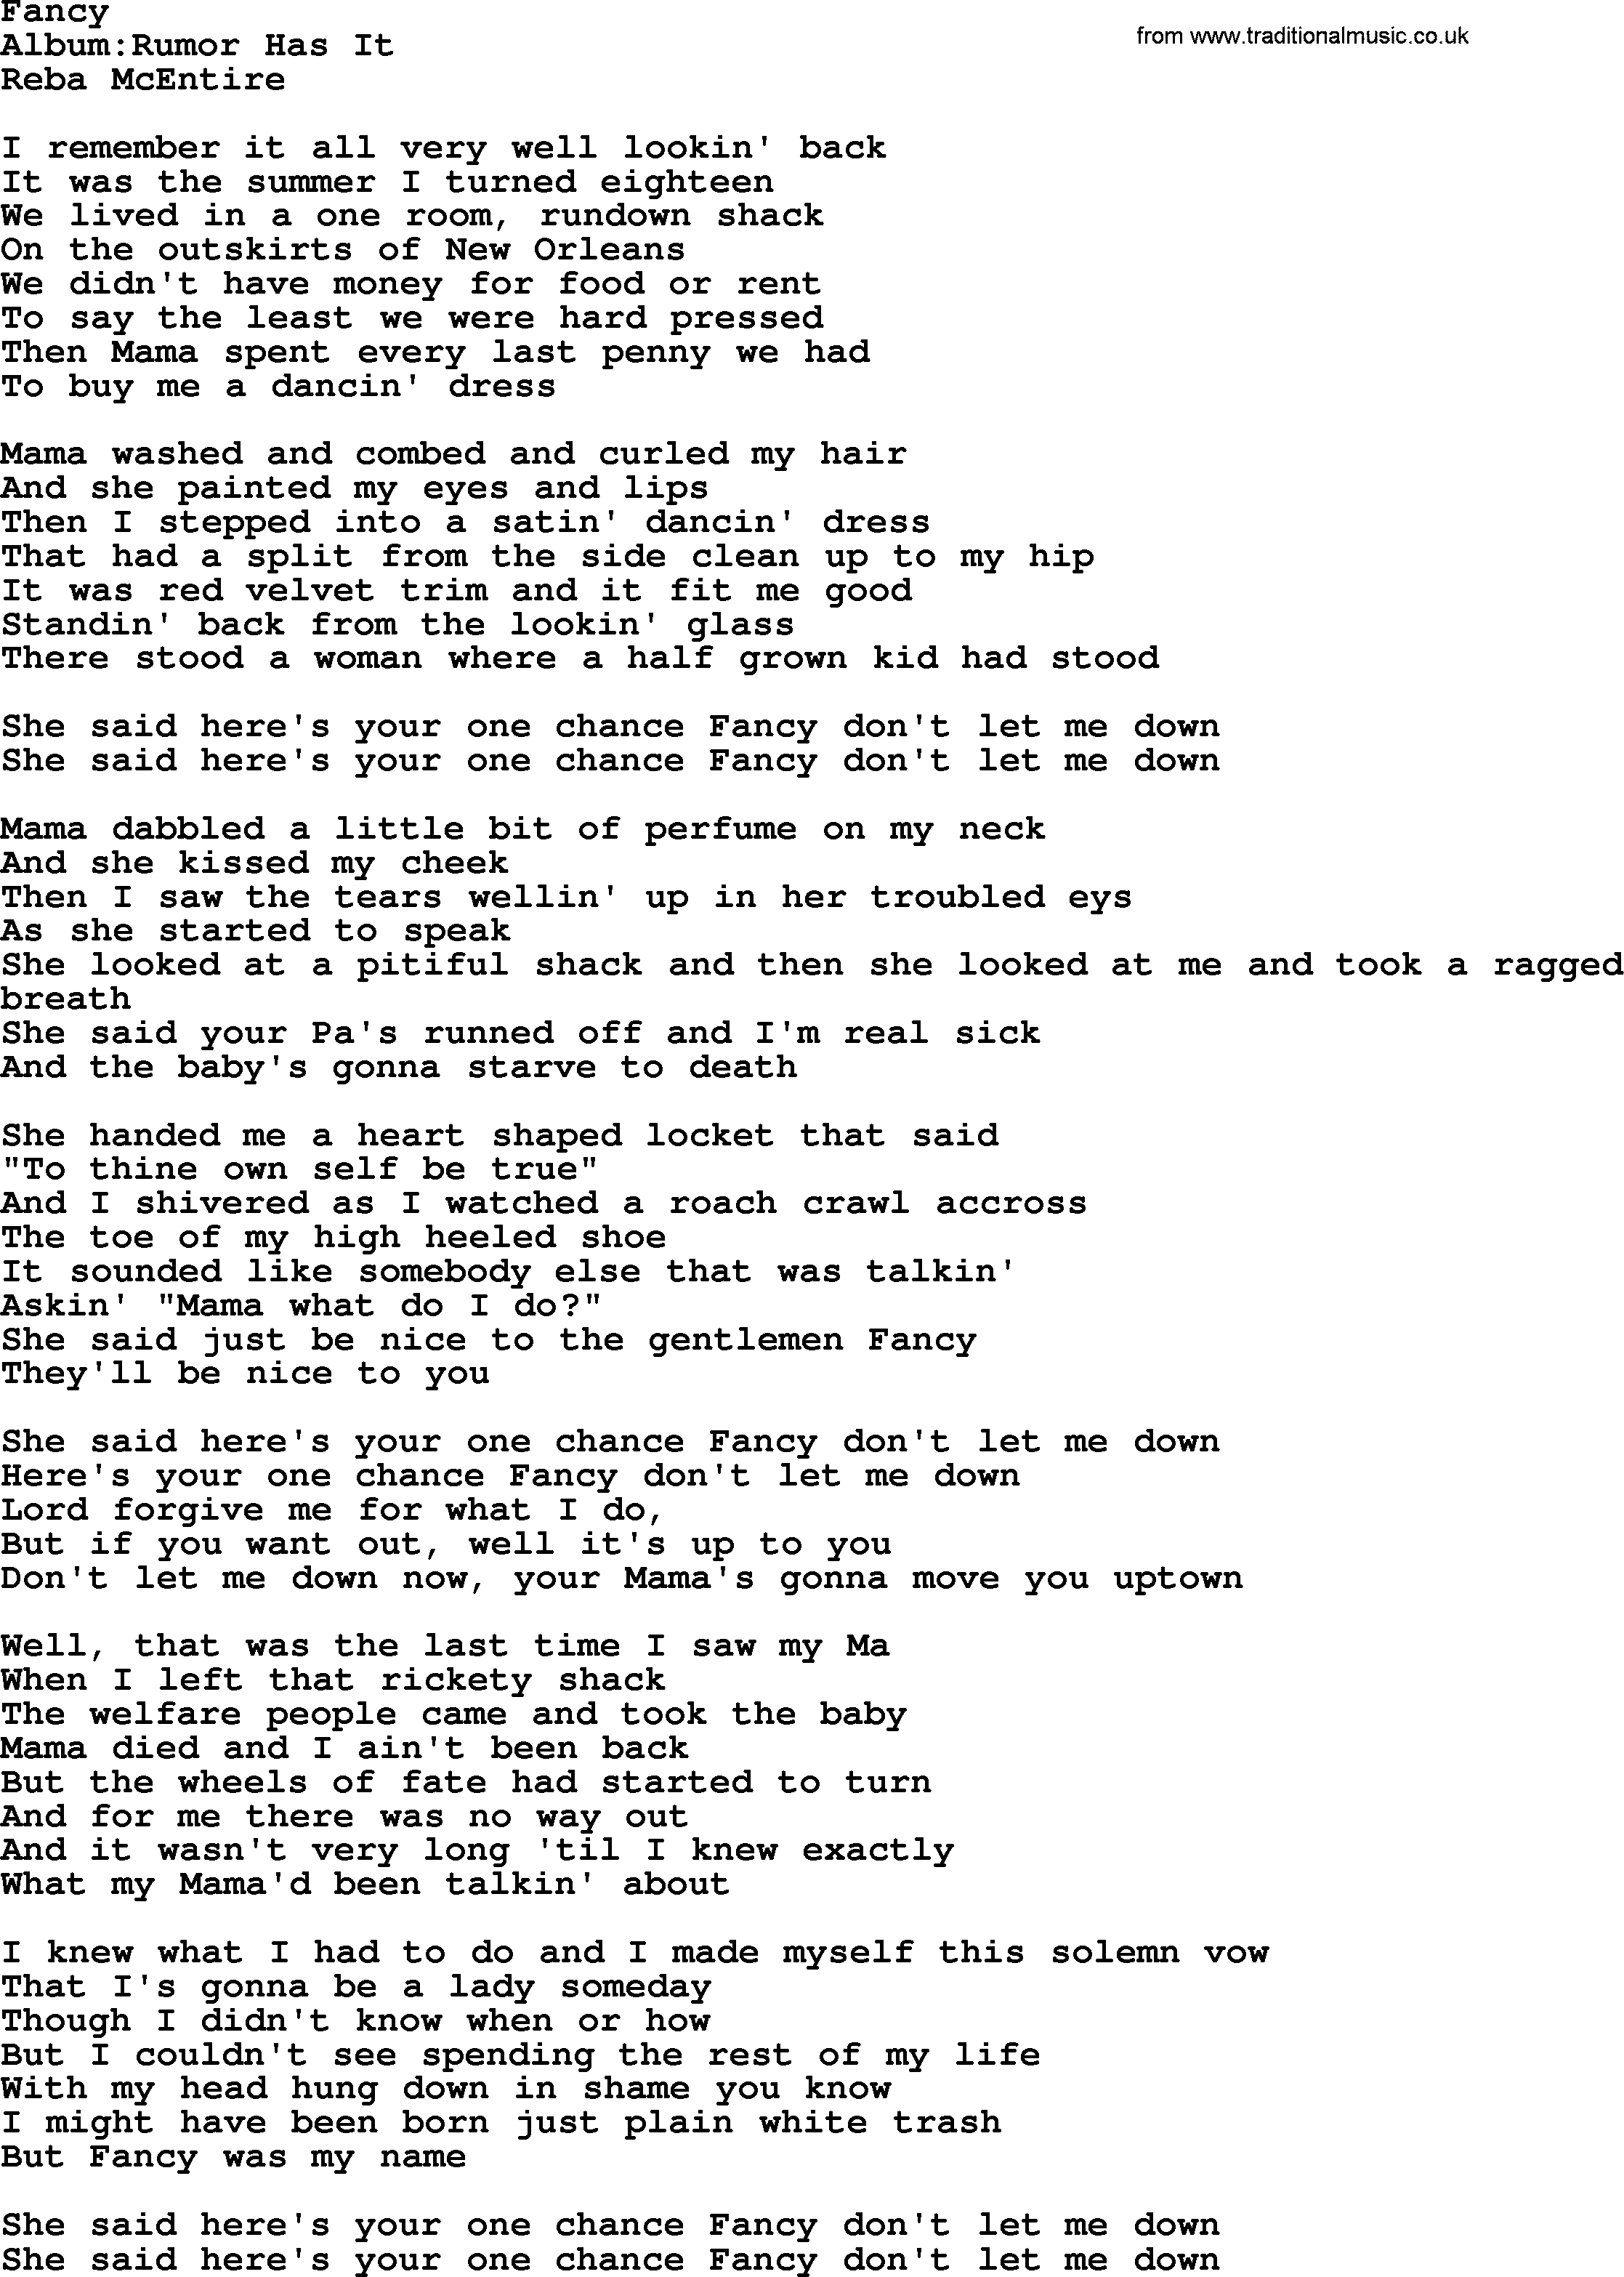 fancy by reba mcentire lyrics